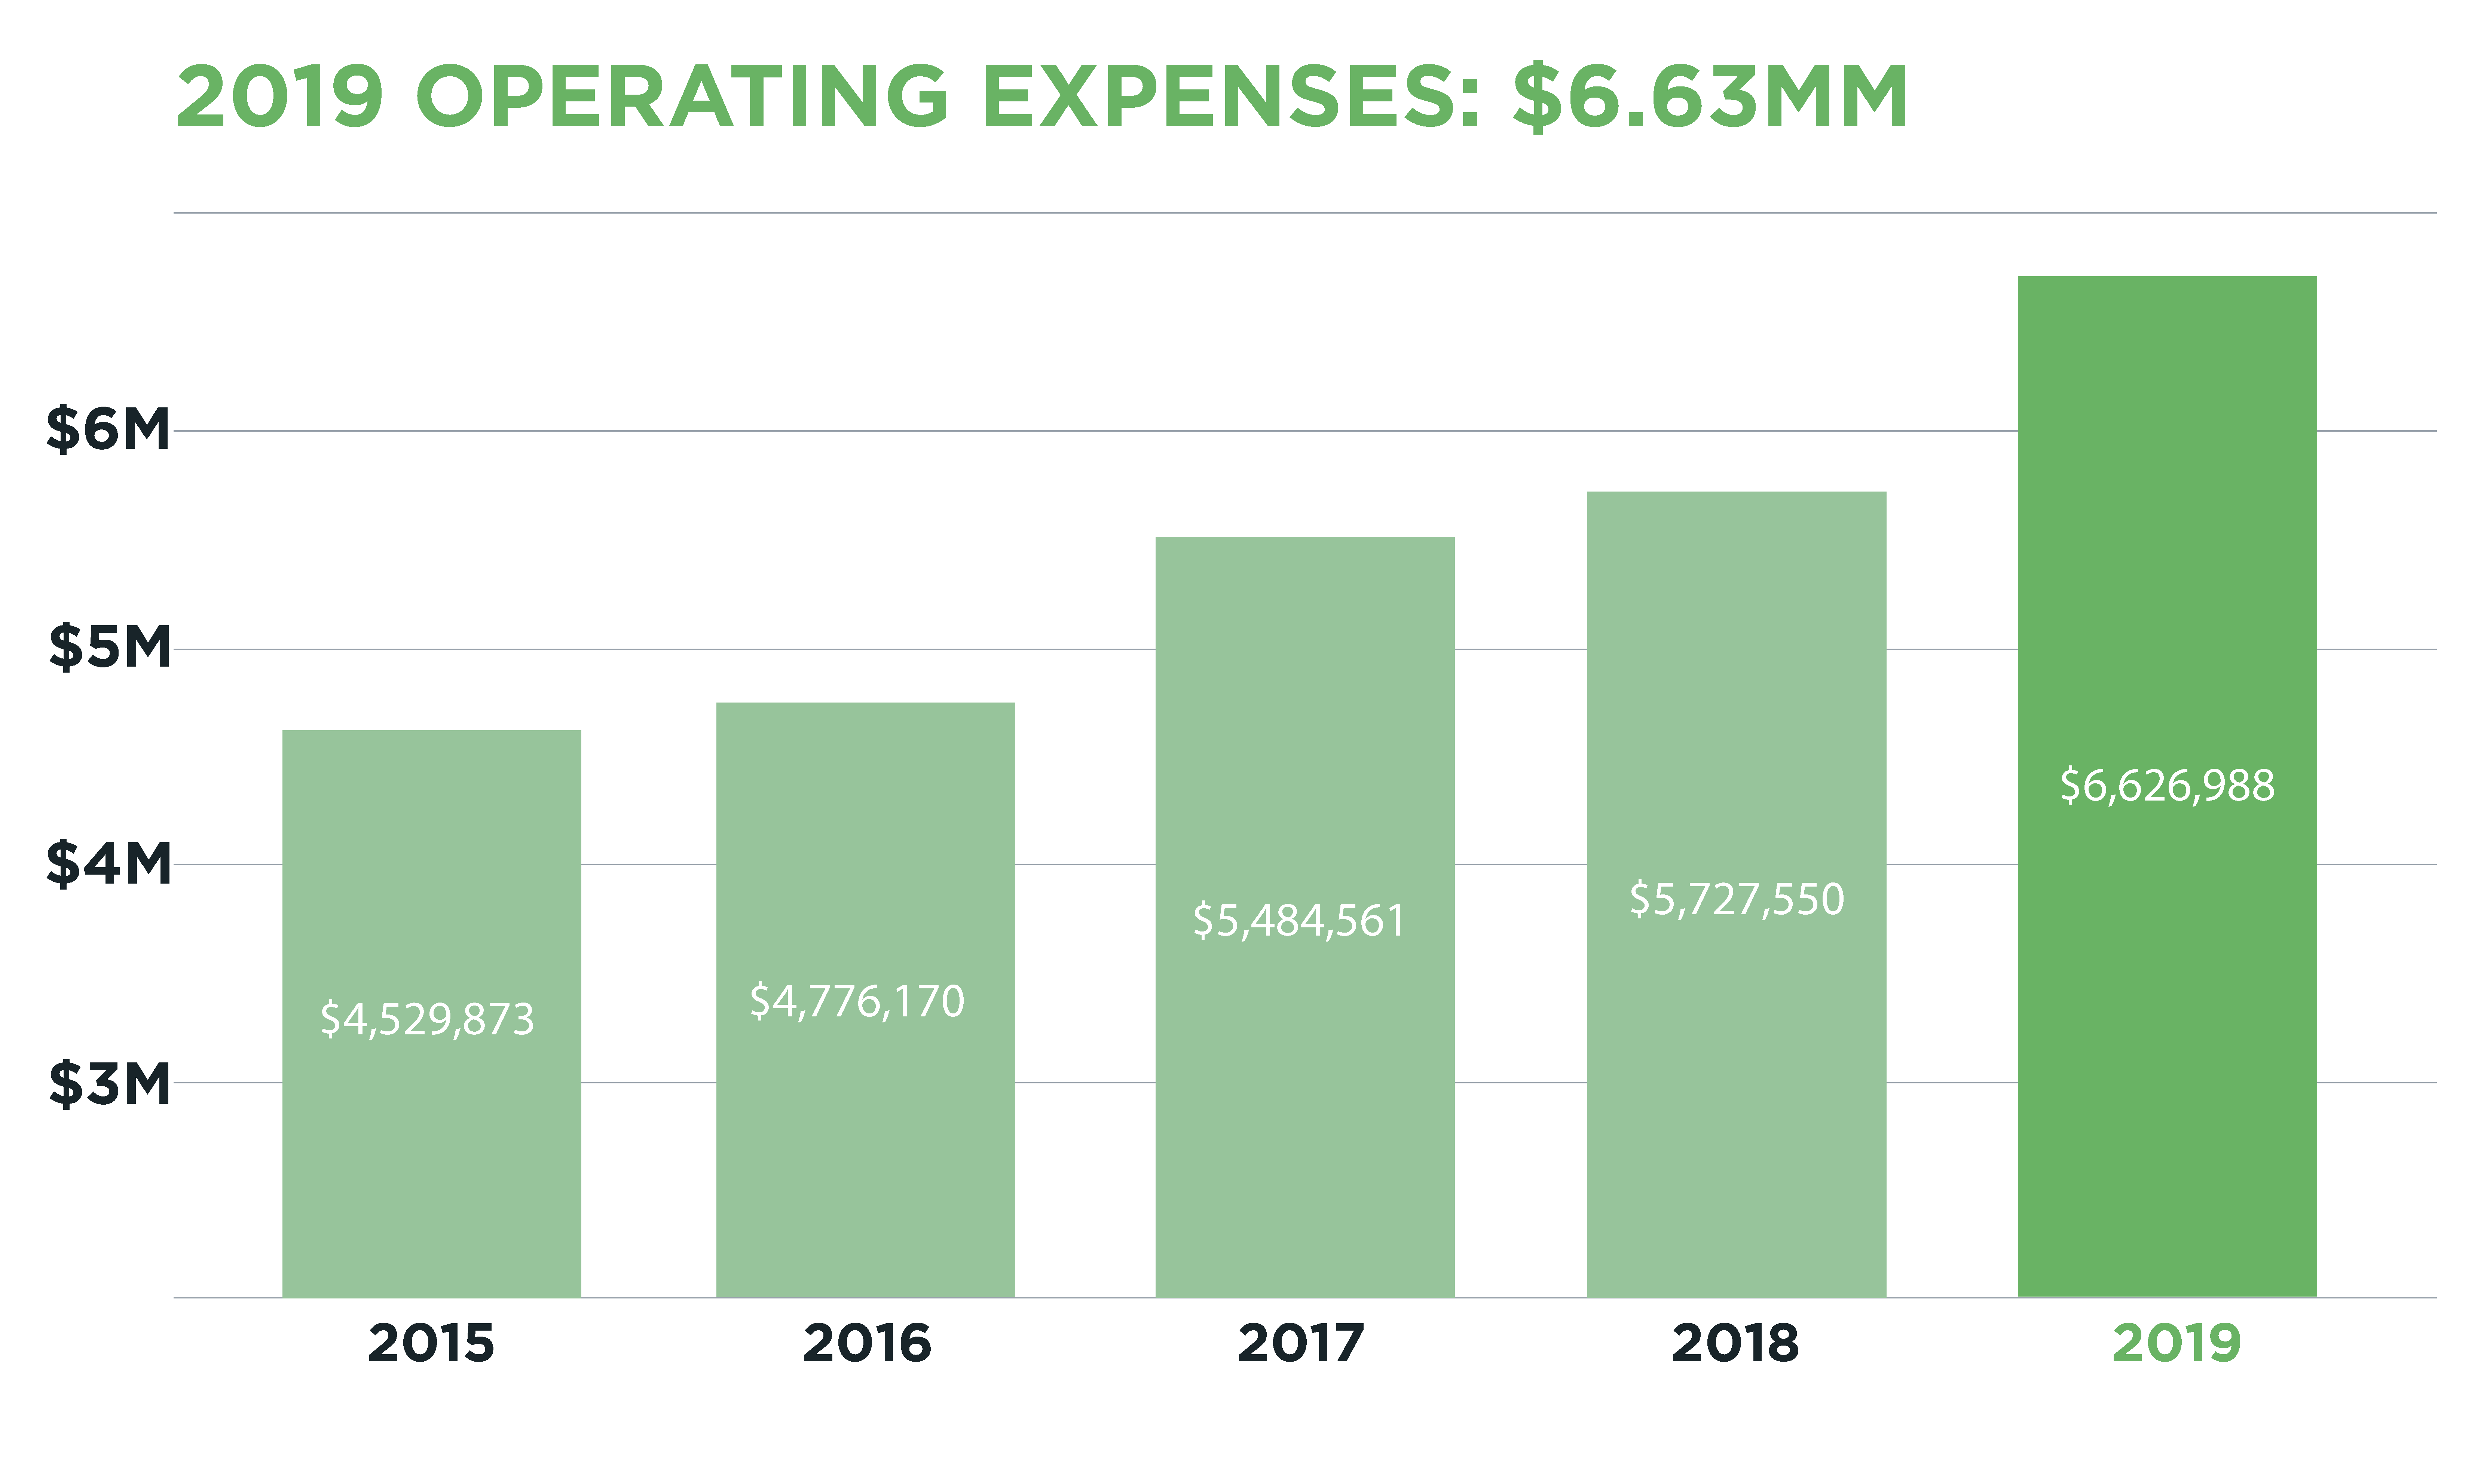 A graph detailing the 2019 Operating Expenses for ORION